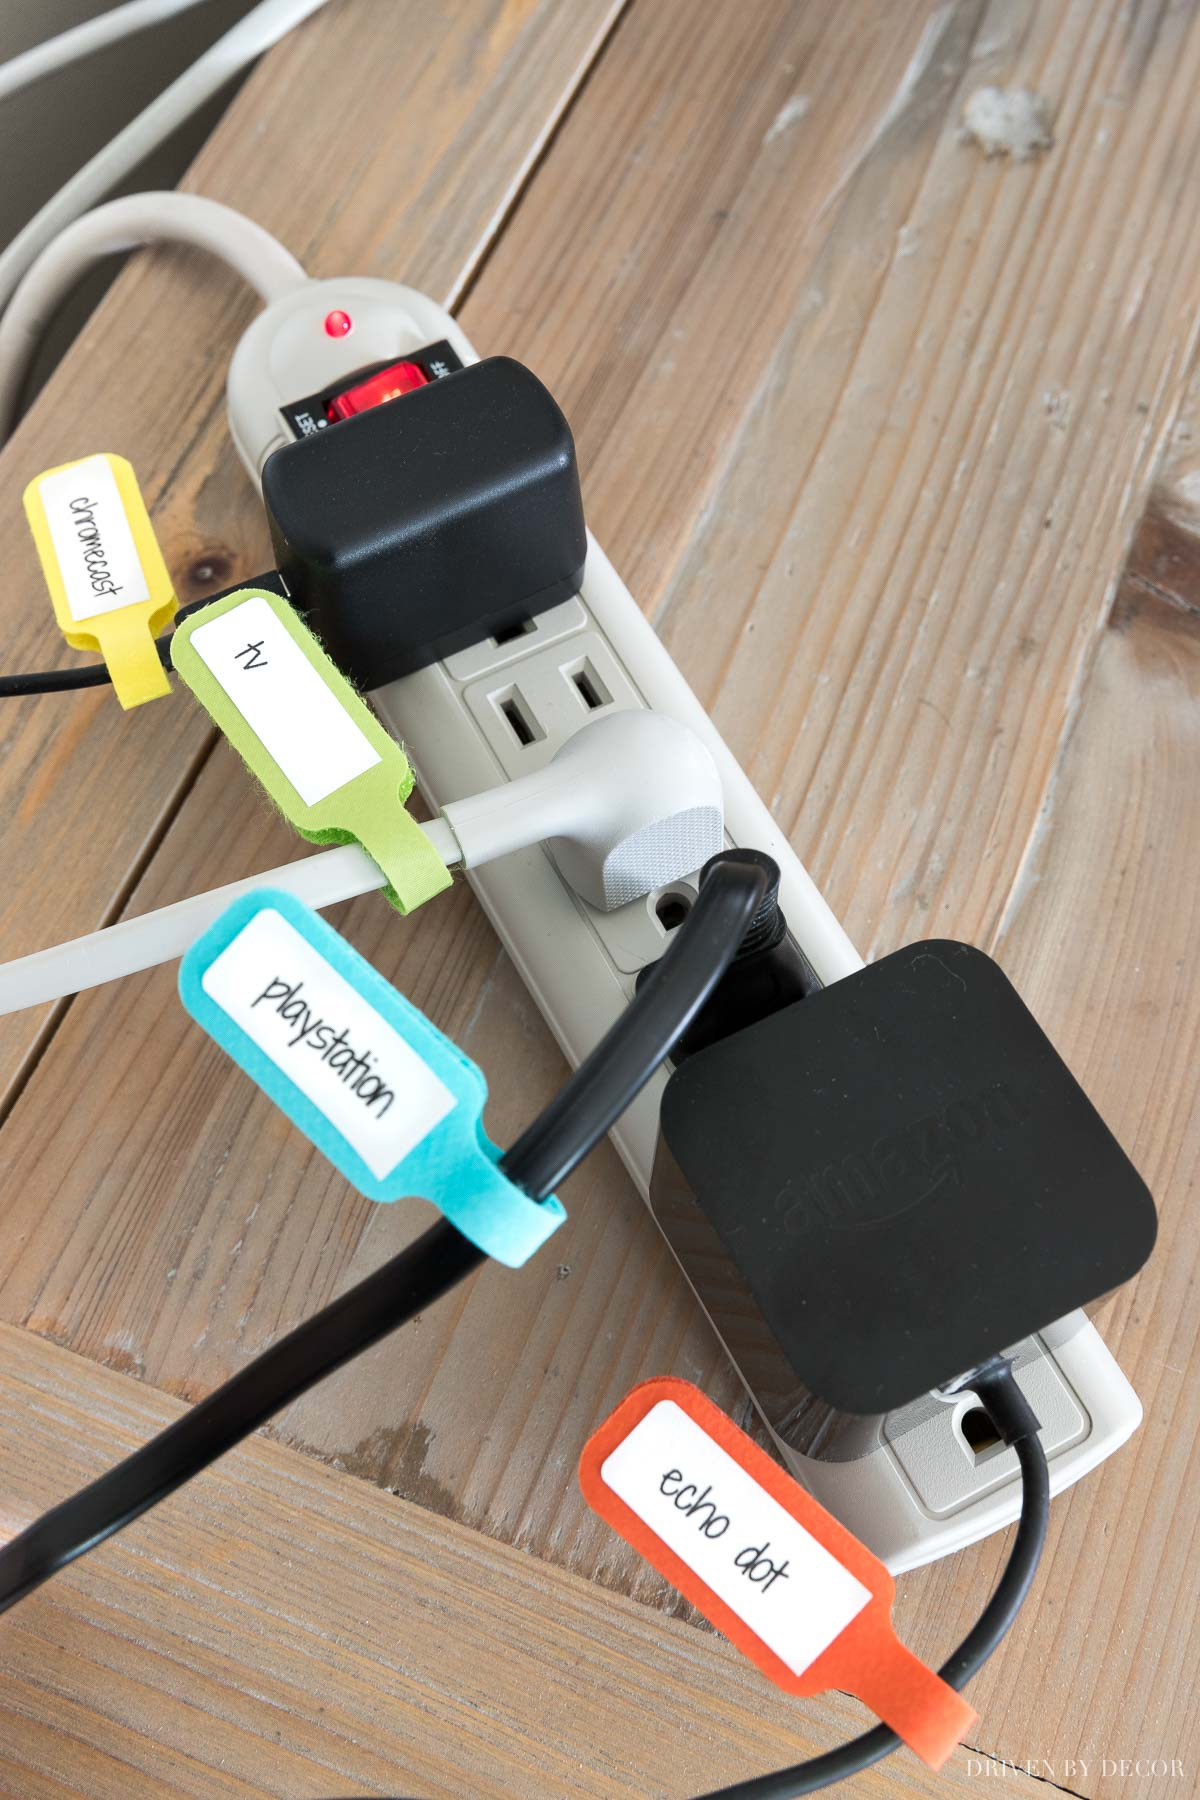 Love these velcro cord labels for easily knowing which cord goes where!